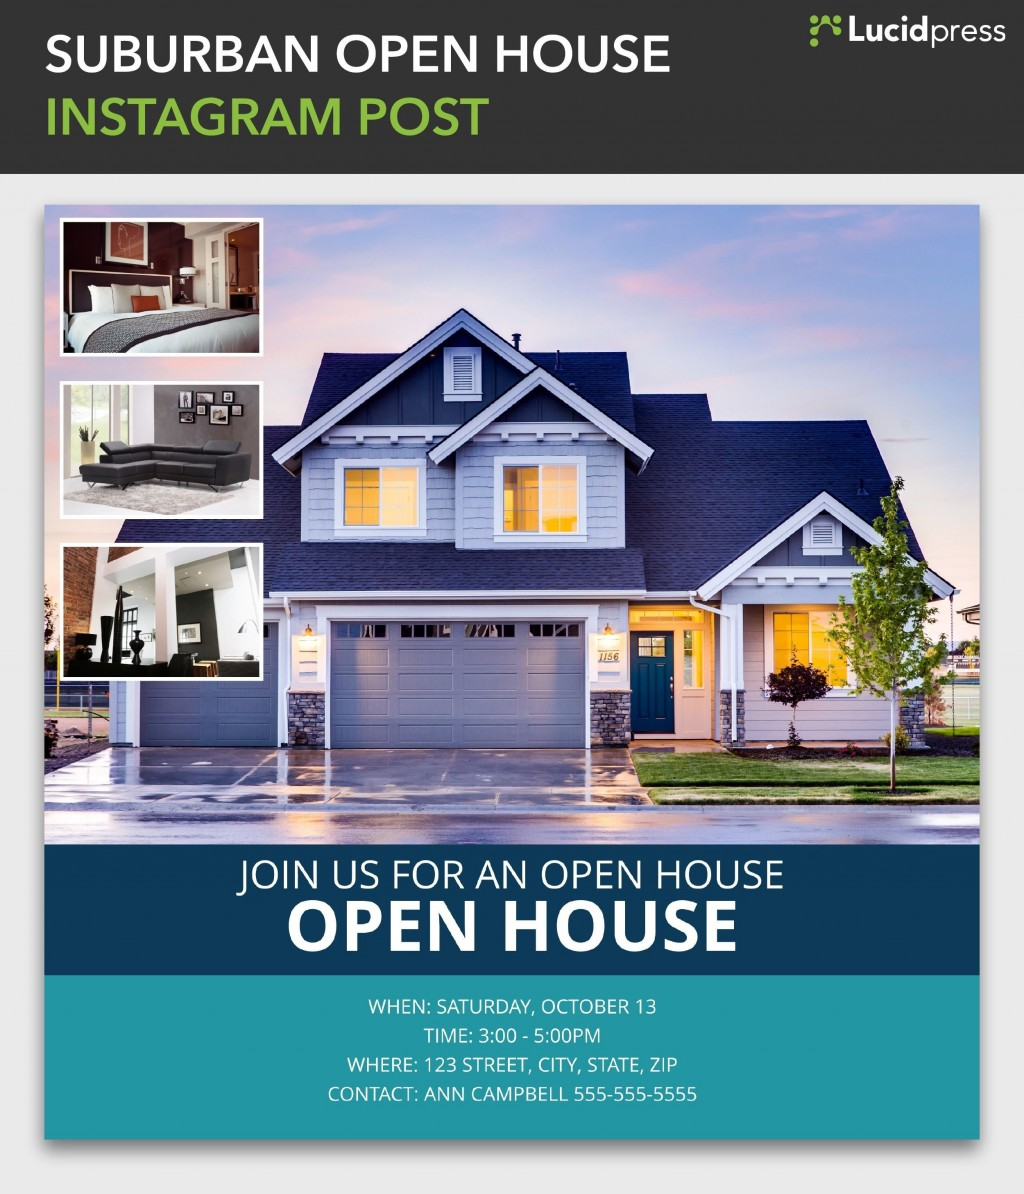 000 Dreaded Open House Flyer Template Word High Resolution  Free Microsoft SchoolLarge